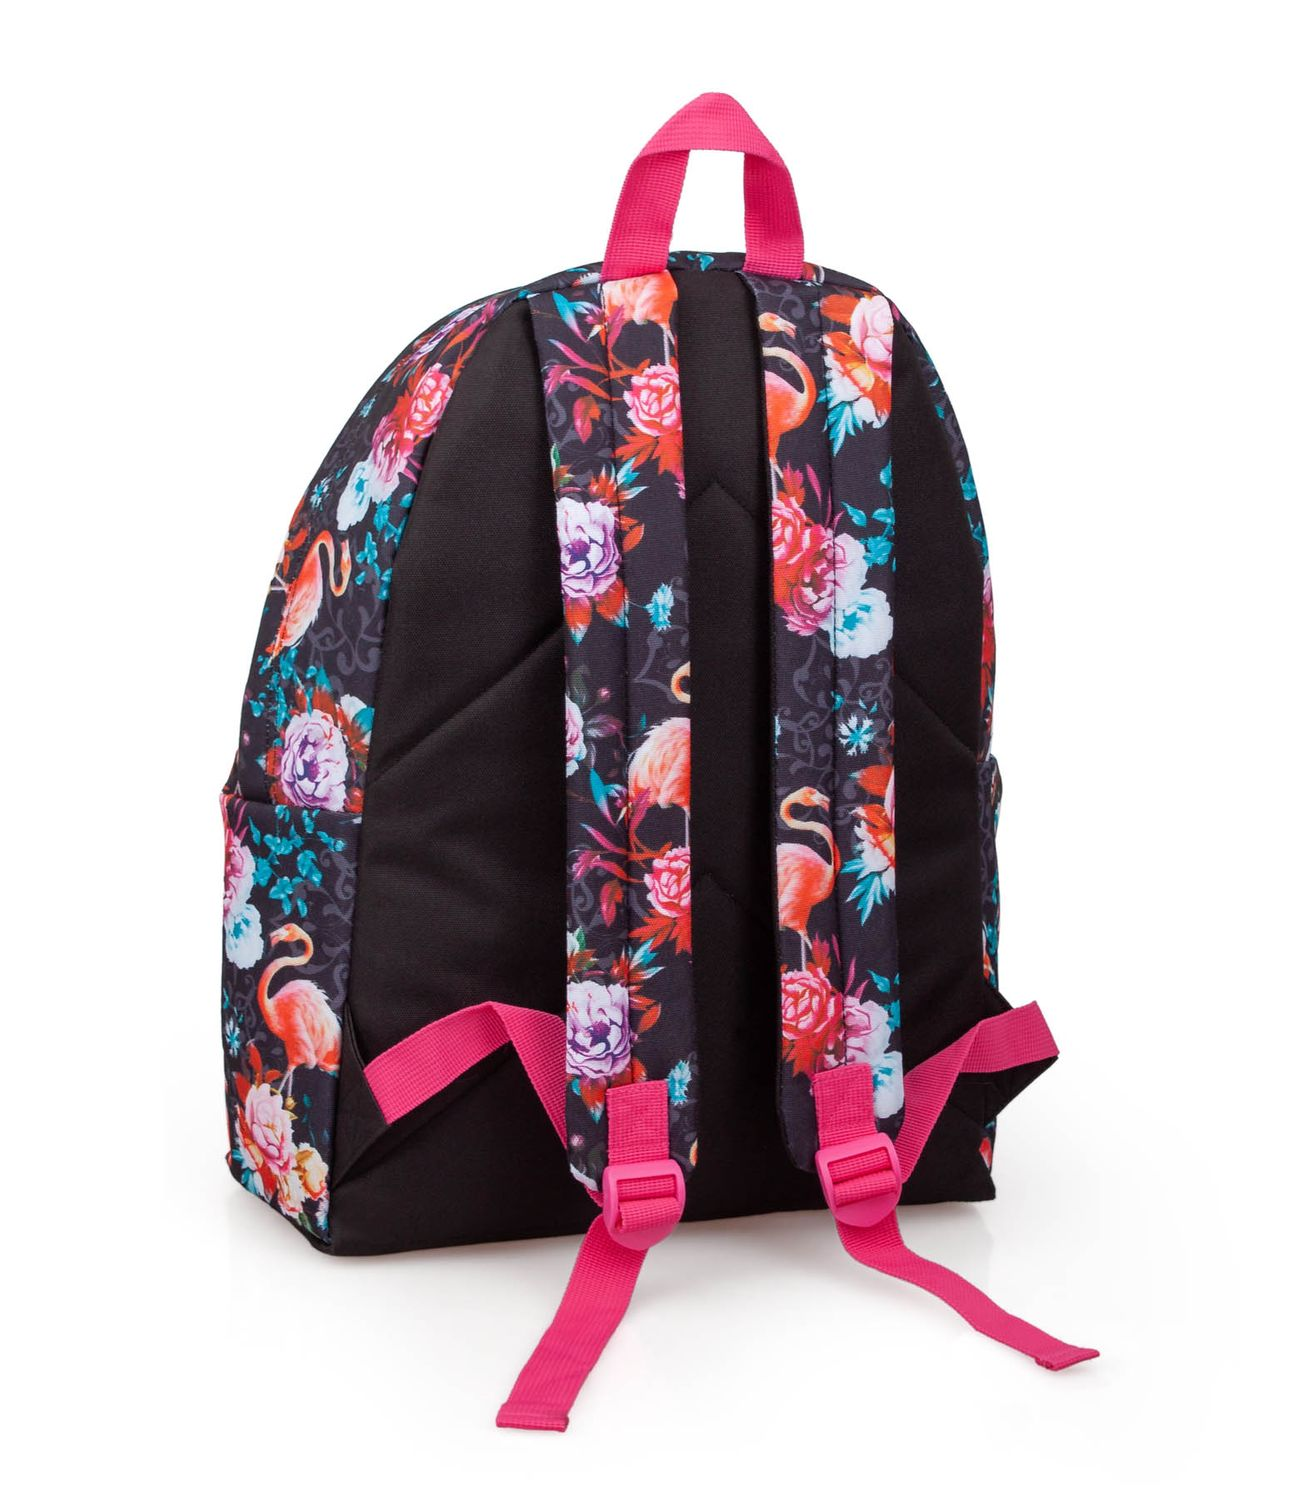 Backpack Rucksack + Pencil Case FLAMINGO – image 2